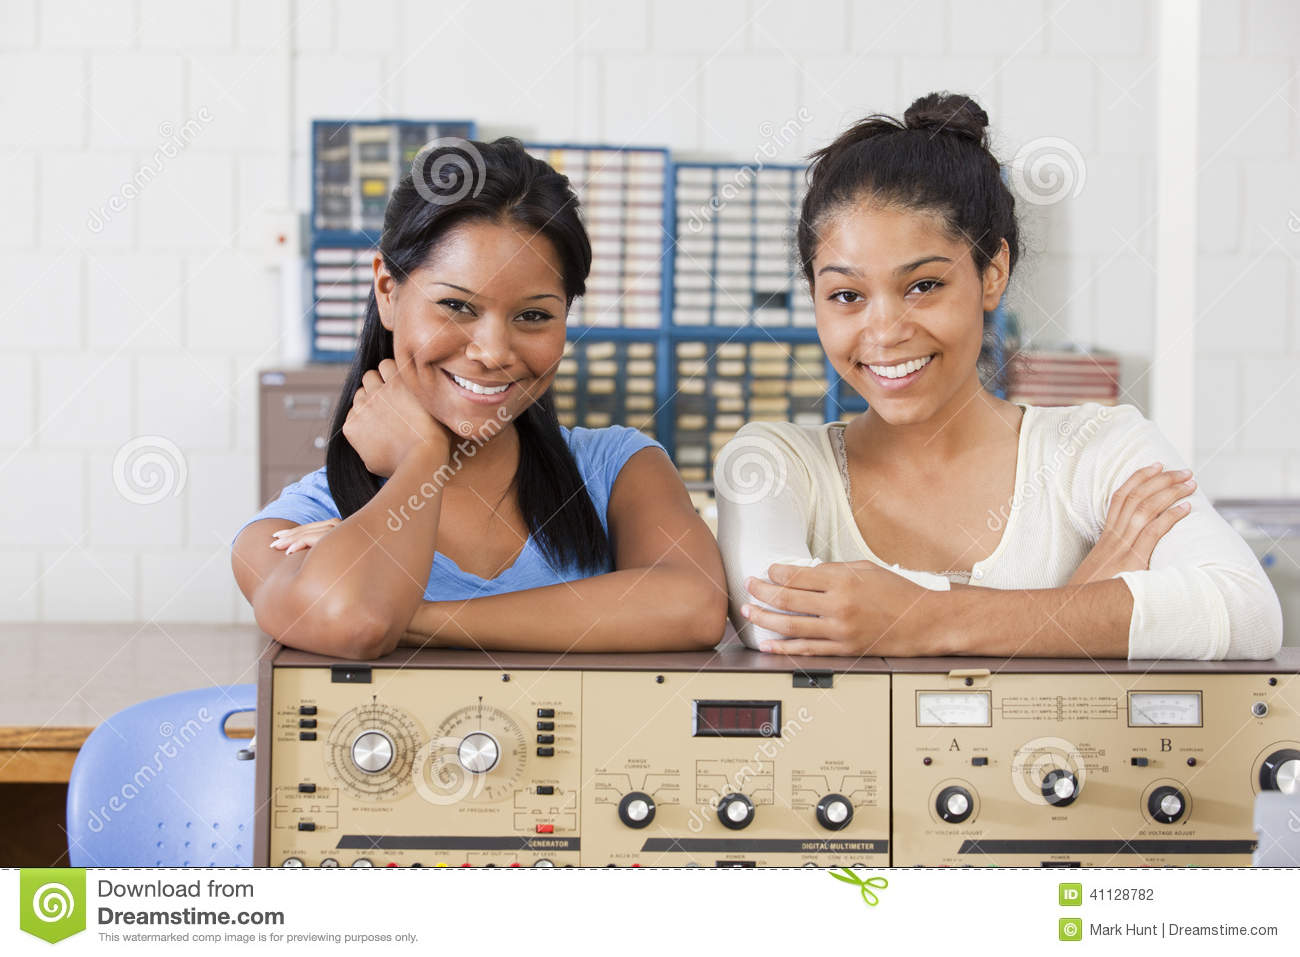 Female Engineering Students At Test Bench Stock Photo.